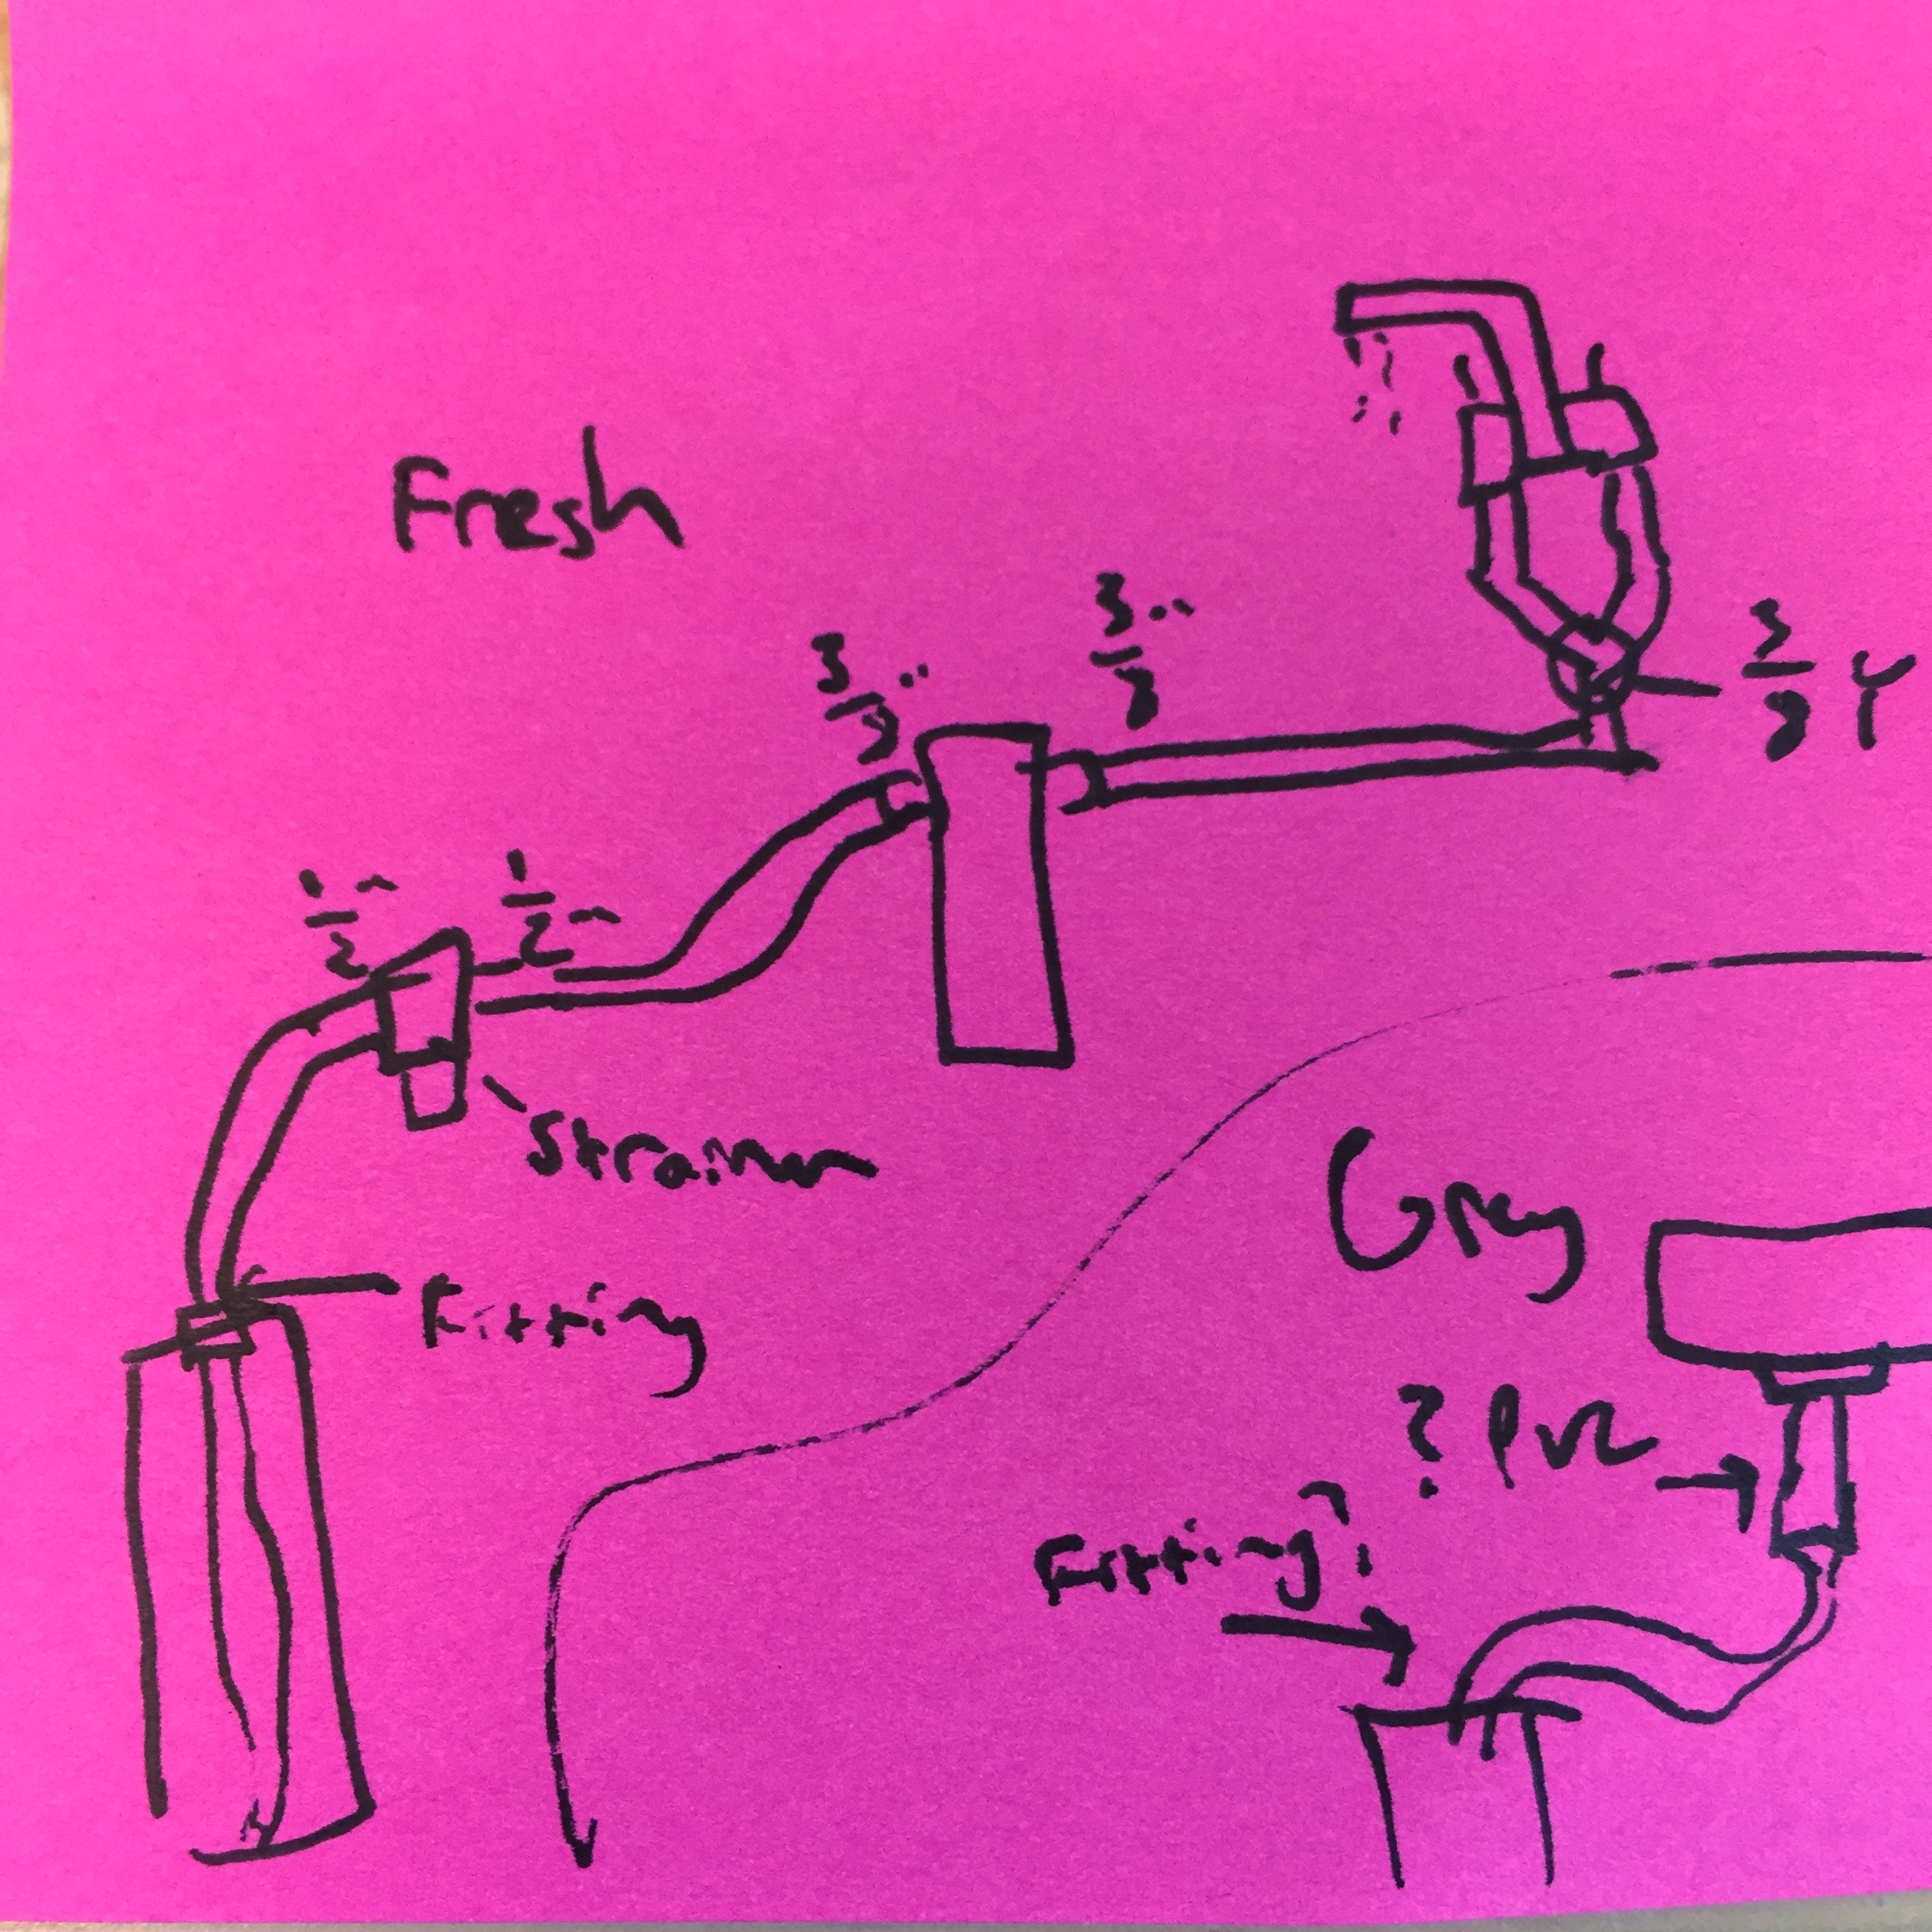 Sometimes the best ideas come in the form of a pink post-in note with doodles on it